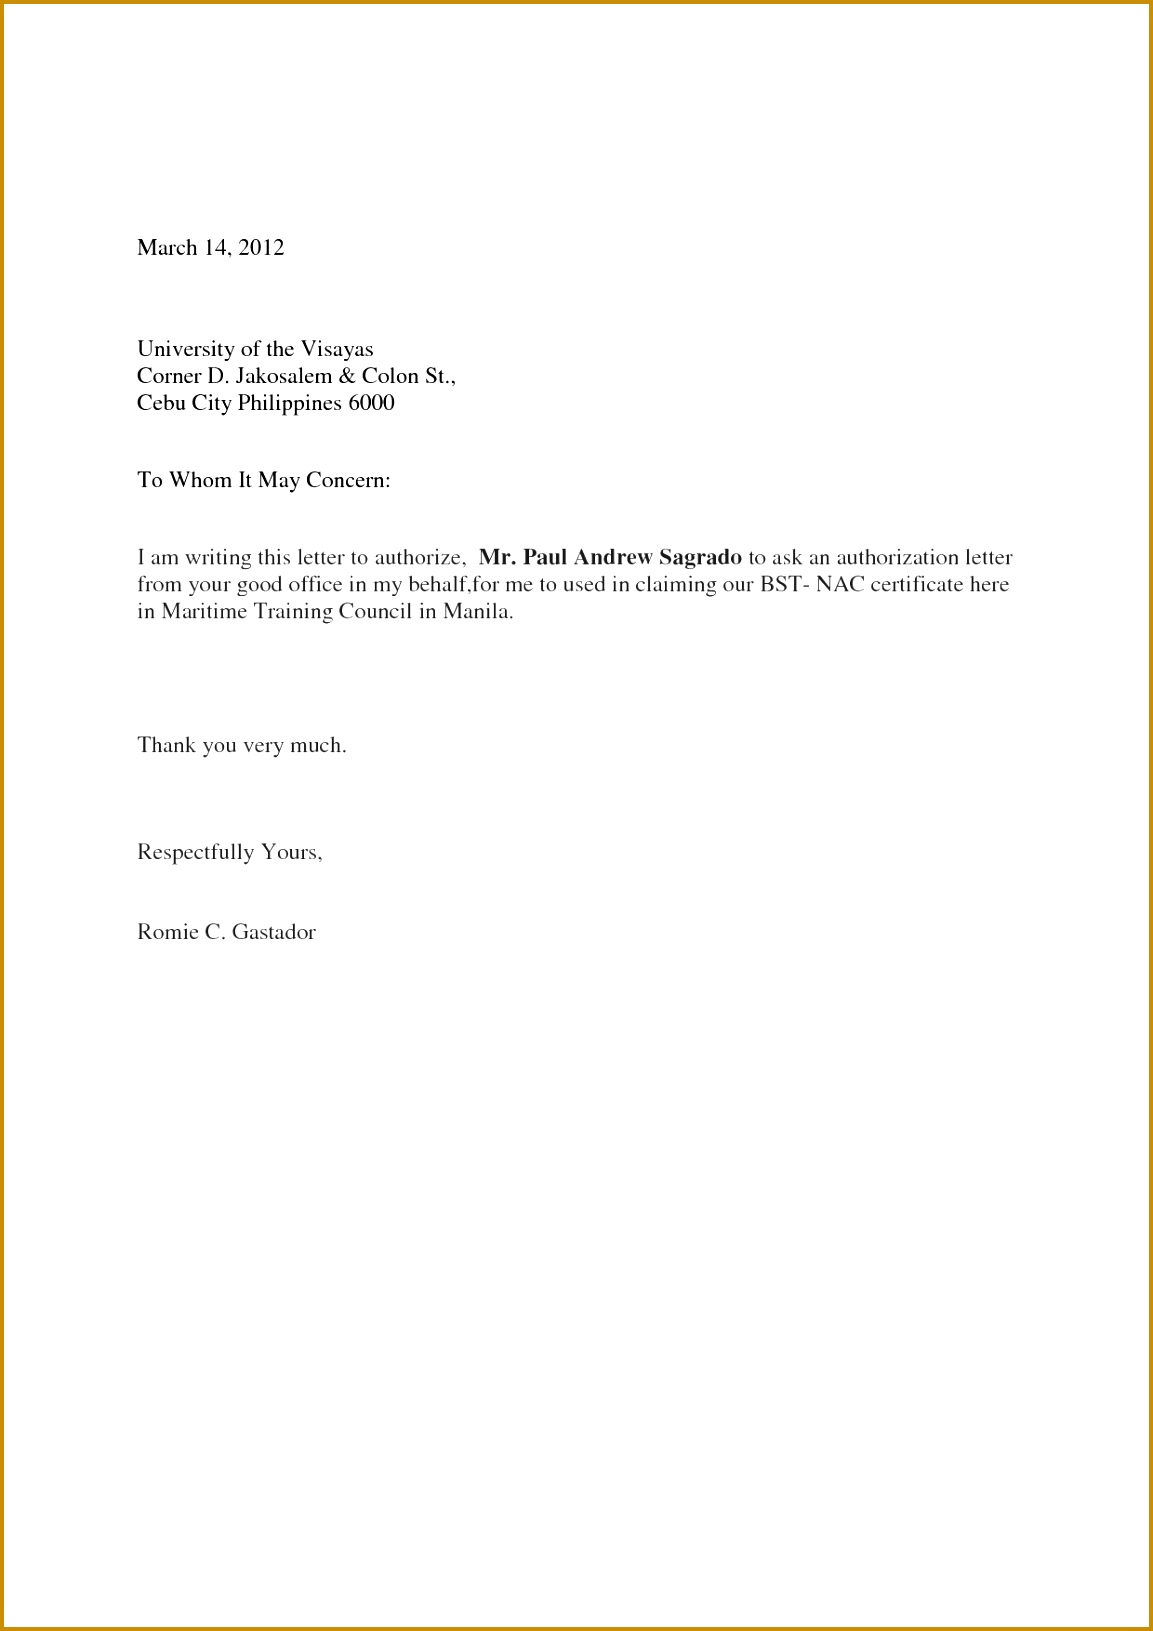 authorize letter sample 11531631